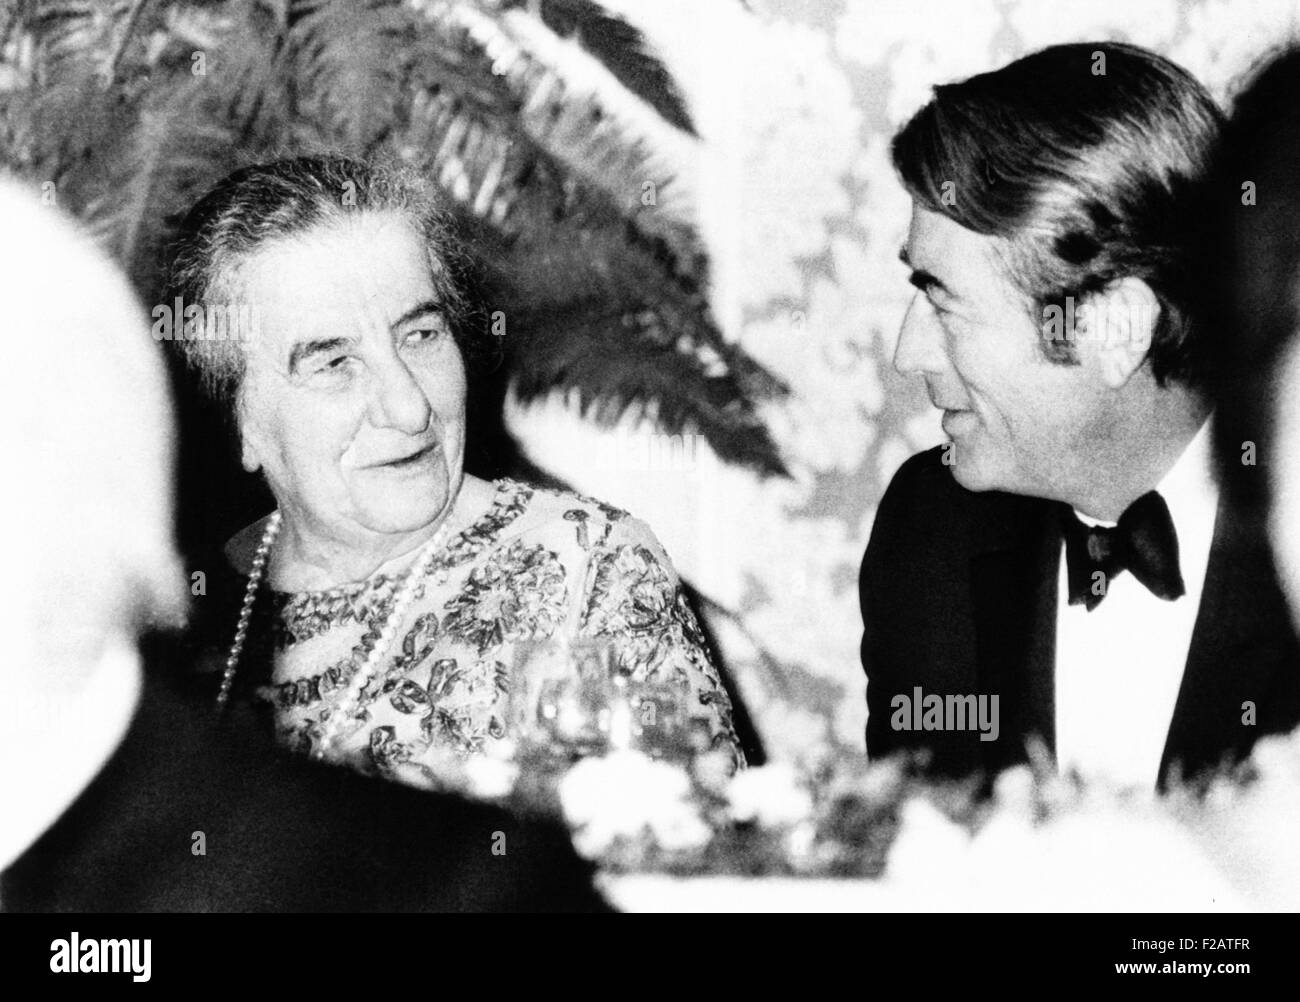 golda meir prime minister of israel dines with actor gregory peck oct 2